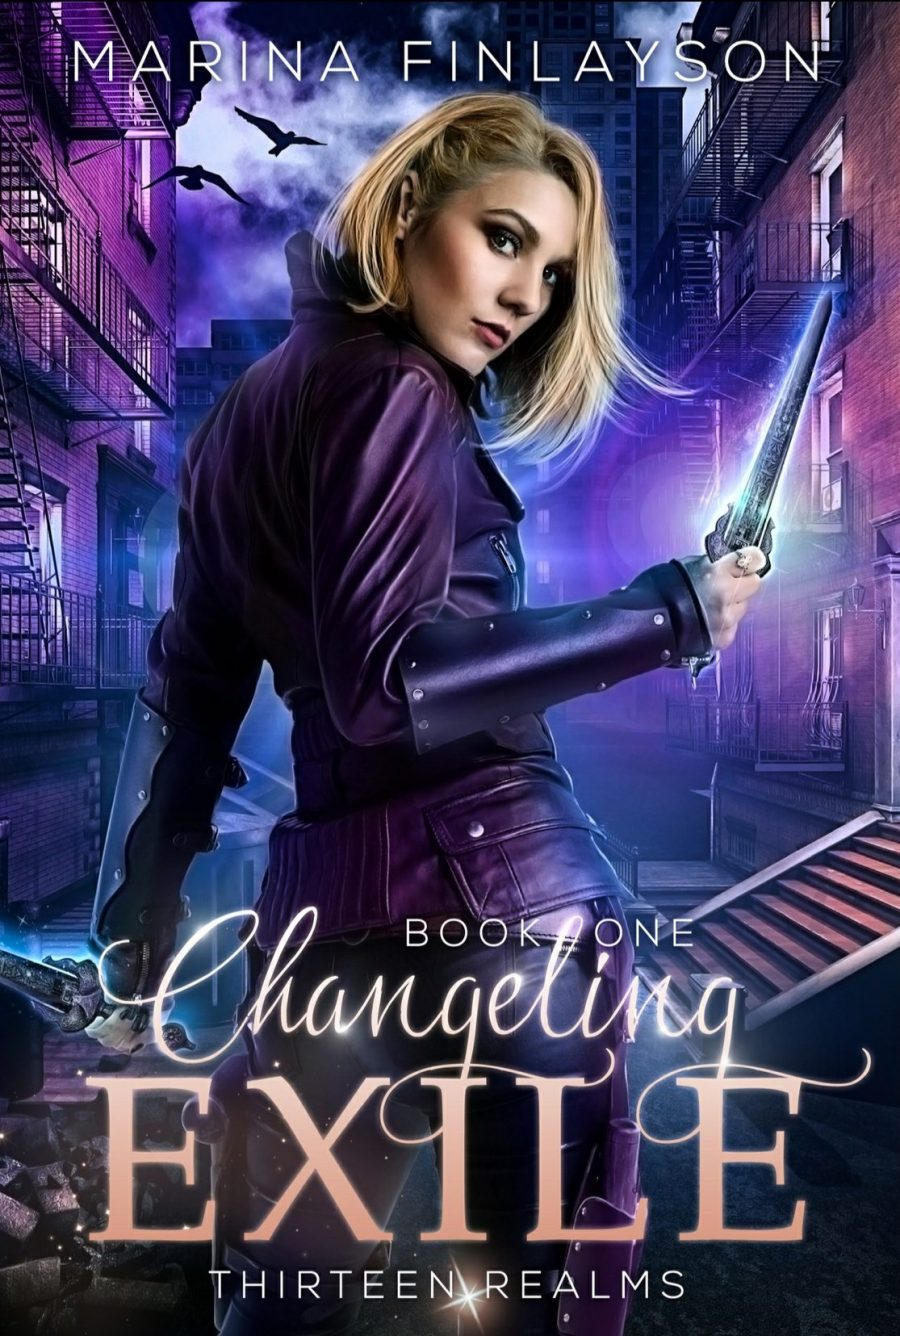 Changeling Exile *Thirteen Realms - Book 1* by Marina Finlayson - A Book Review #BookReview #UrbanFantasy #SlowBurn #UF #Fae #Magic #Paranormal #FirstInSeries #3.5Stars #BookBlogger